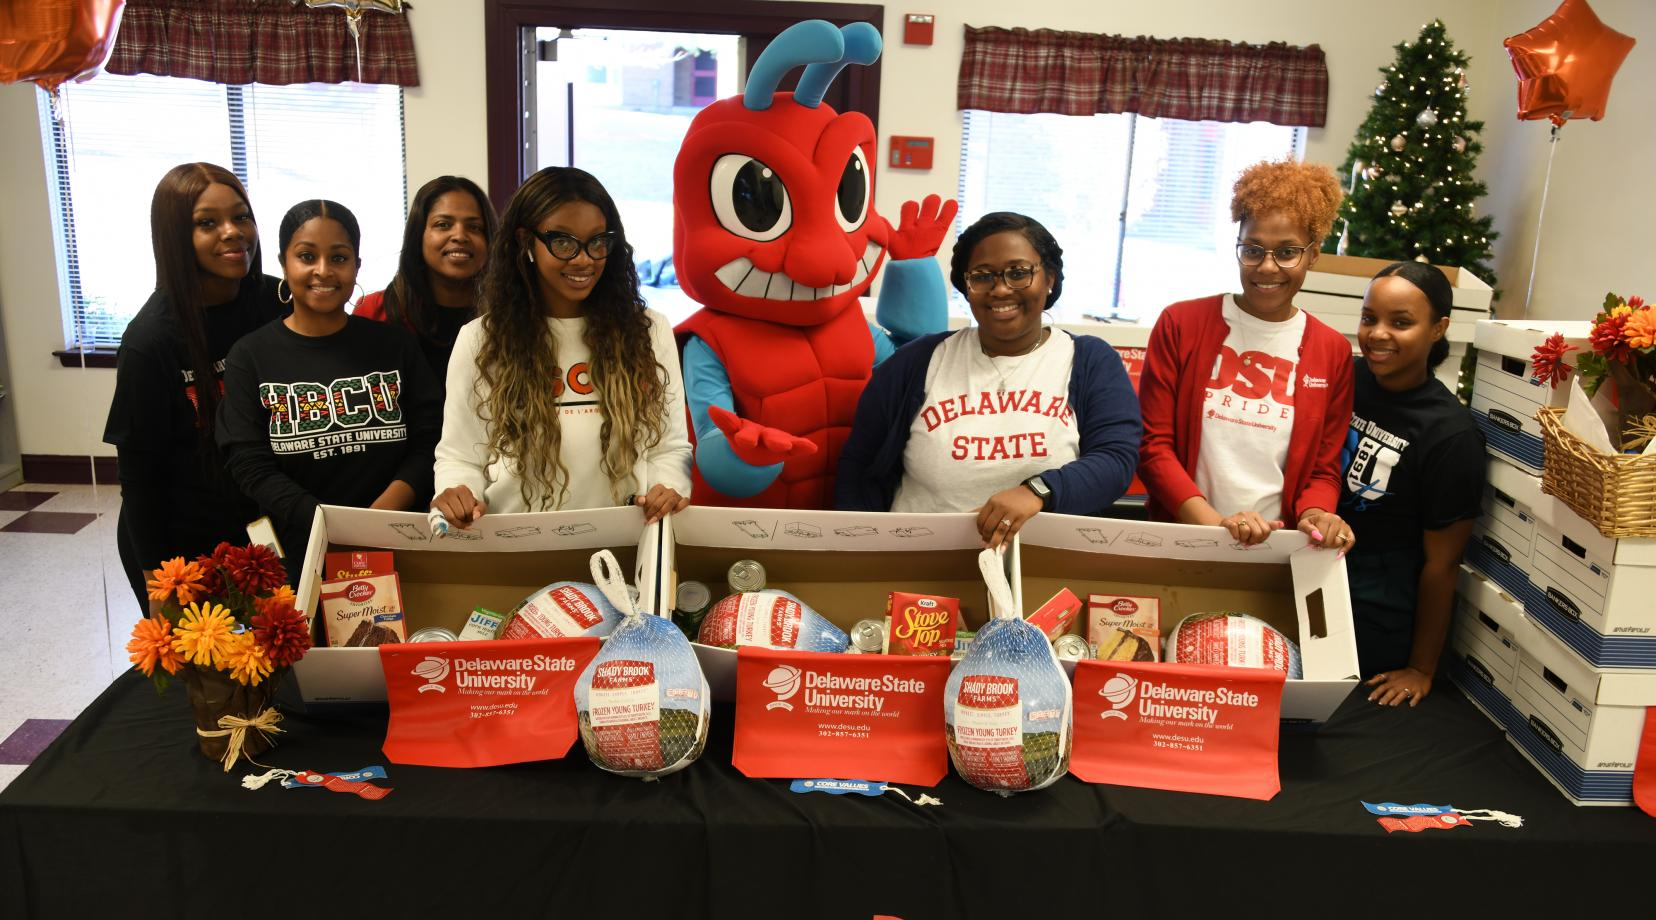 These Enrollment Management members -- (l-r) Destiney Woodson, Shelvia Wright, Andrea Wilson, Siara Bey, the Too Fly Hornet Mascot, Melayna Hall, Tiara Dennis, and Gernelle Forrest -- distributed Thanksgiving dinner items in Smyrna. Another group of their colleagues did the same at a Dover location